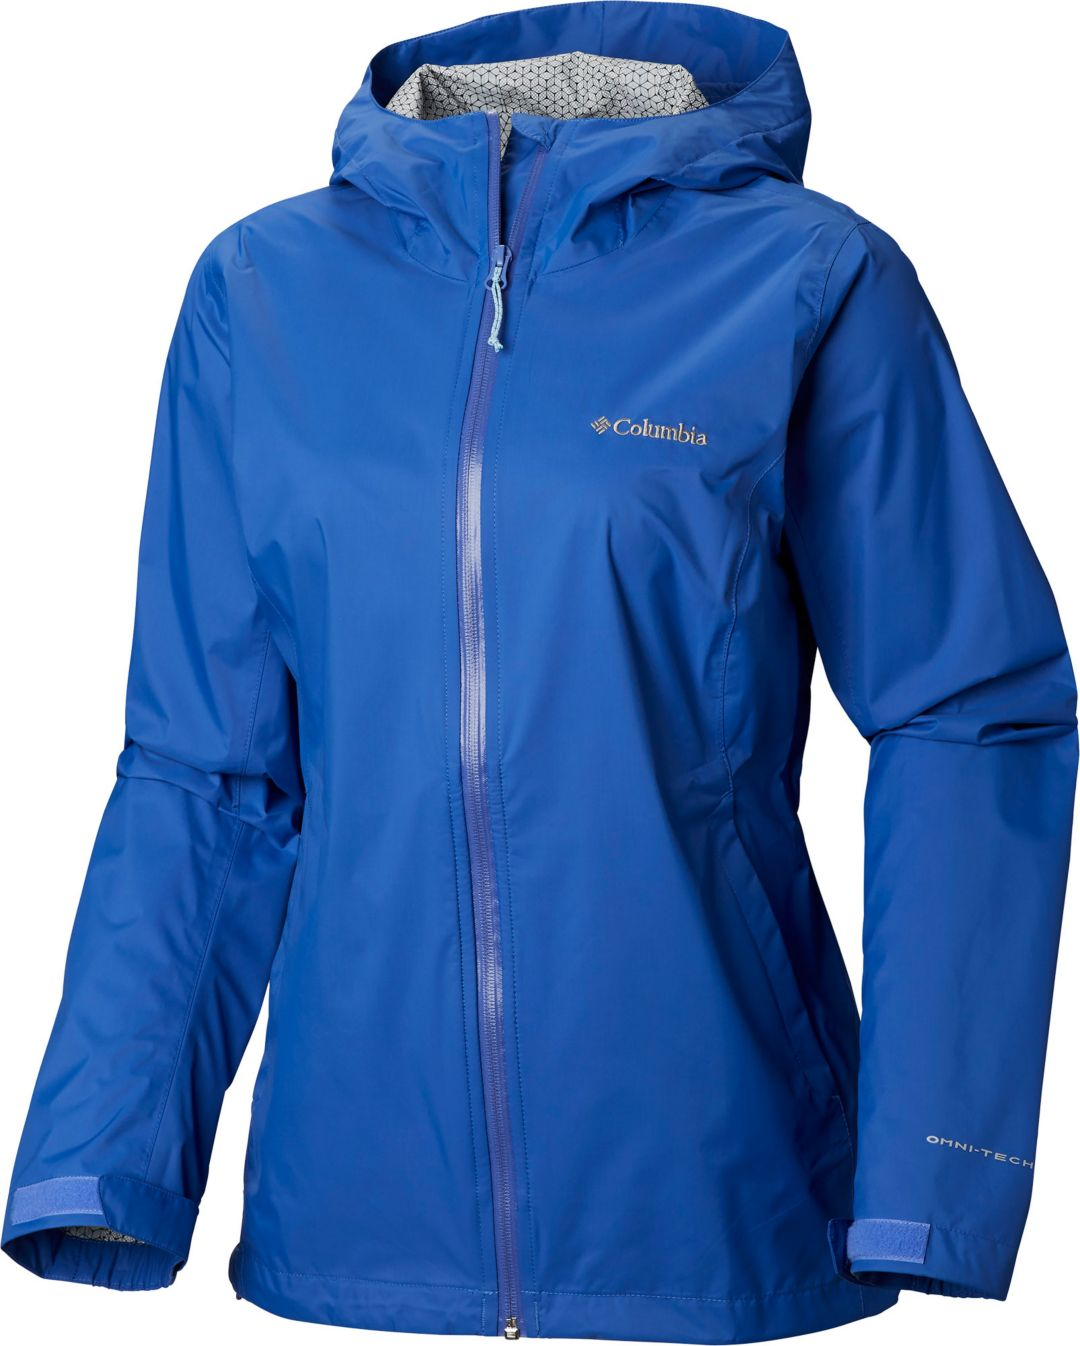 fc4143173 Columbia Women's EvaPOURation Rain Jacket